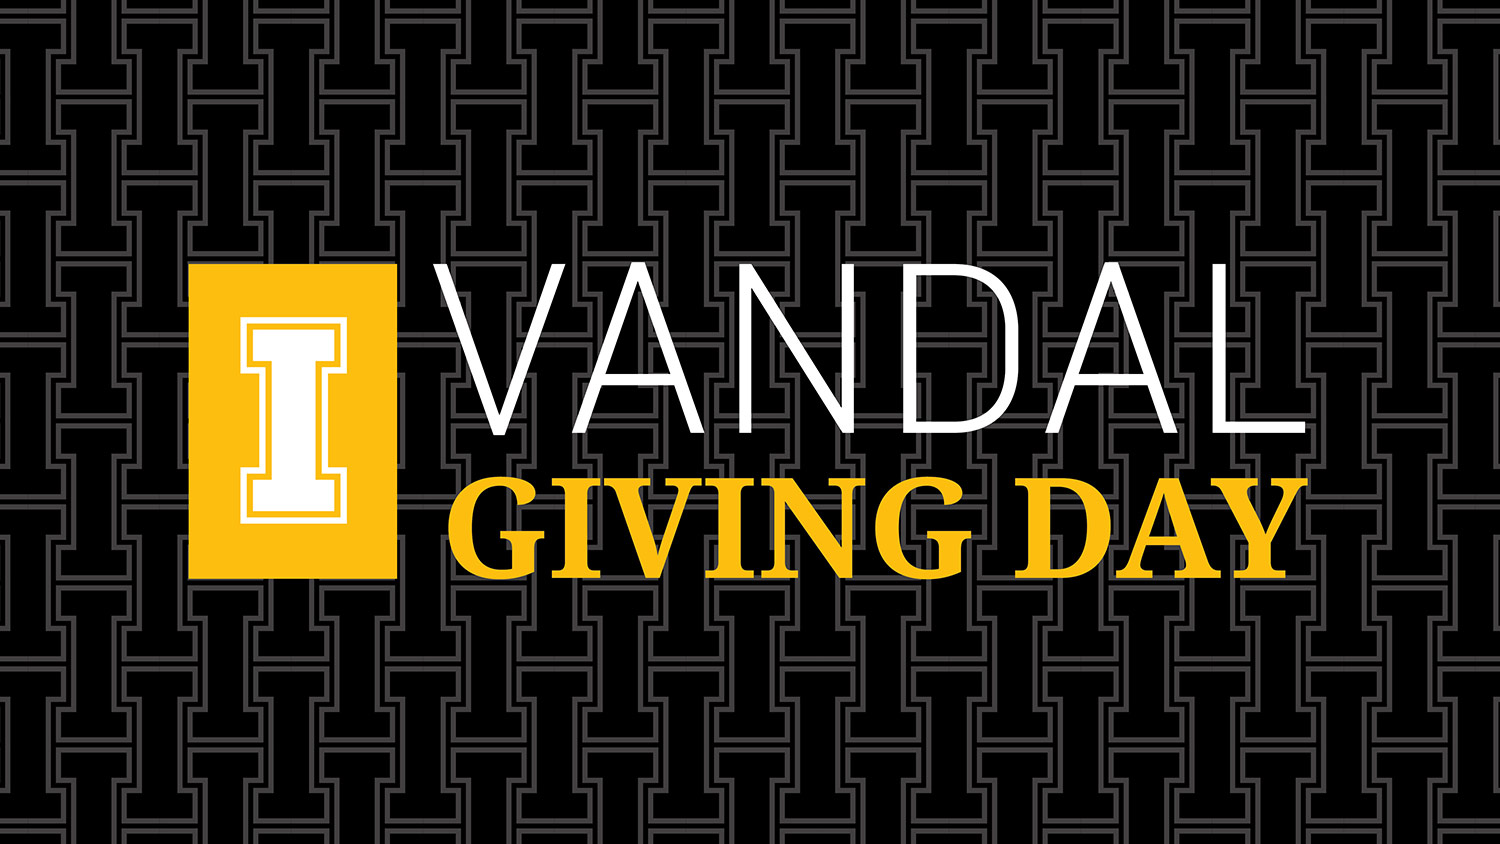 VANDAL GIVING DAY